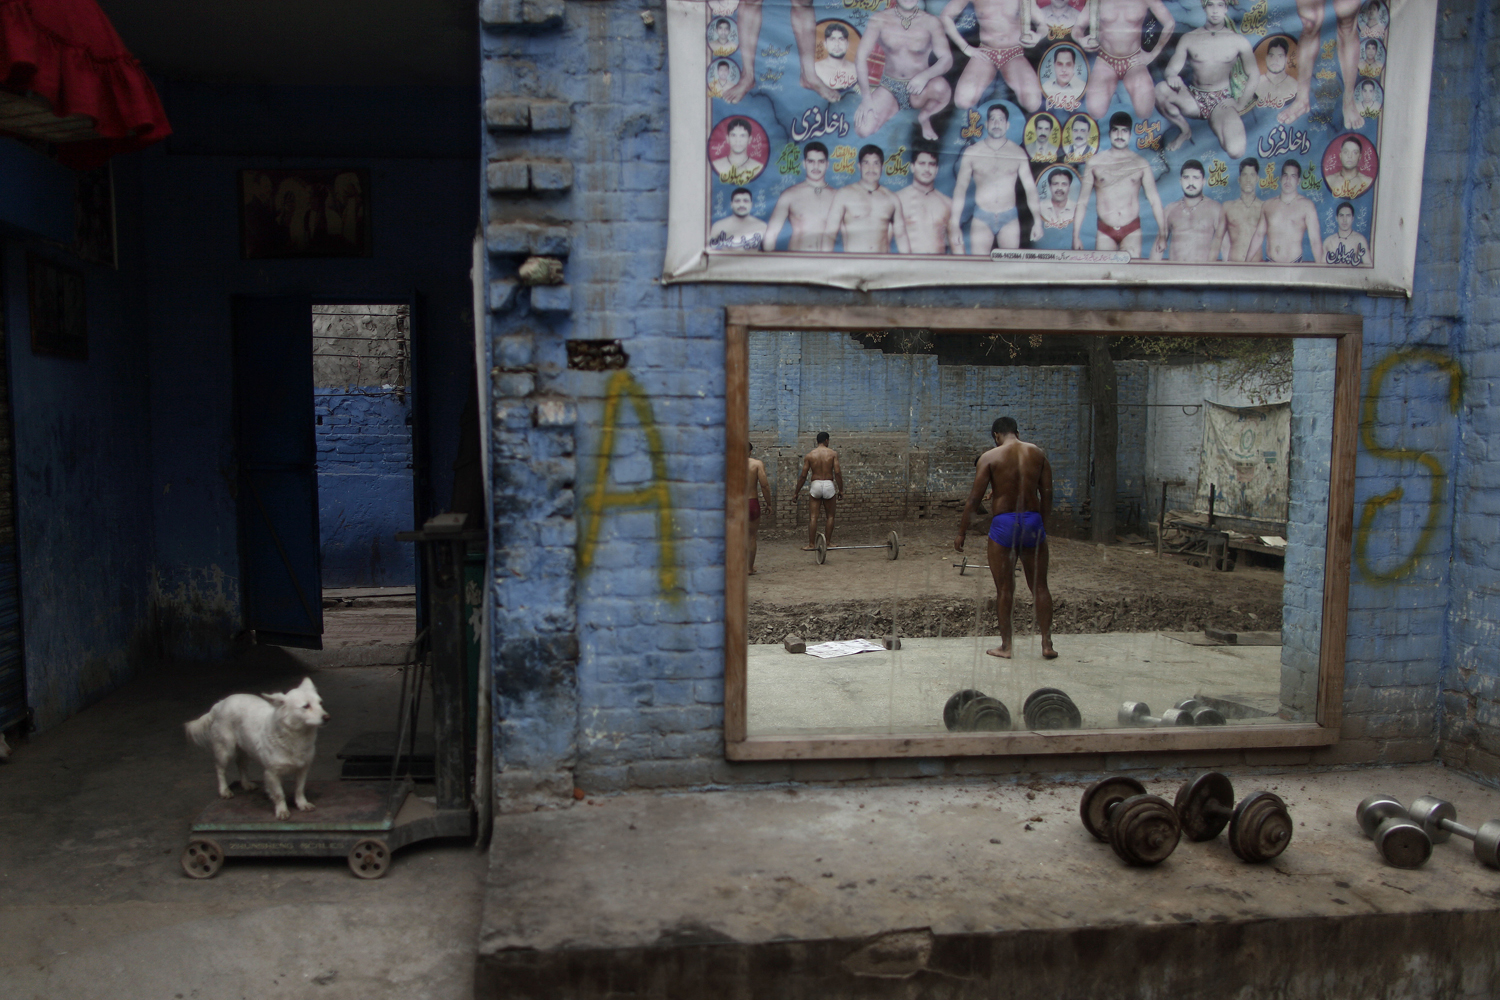 Feb. 26, 2013. A dog looks at Pakistani Kushti wrestlers, right, reflected on a mirror, as they attend their daily training session in Lahore, Pakistan.